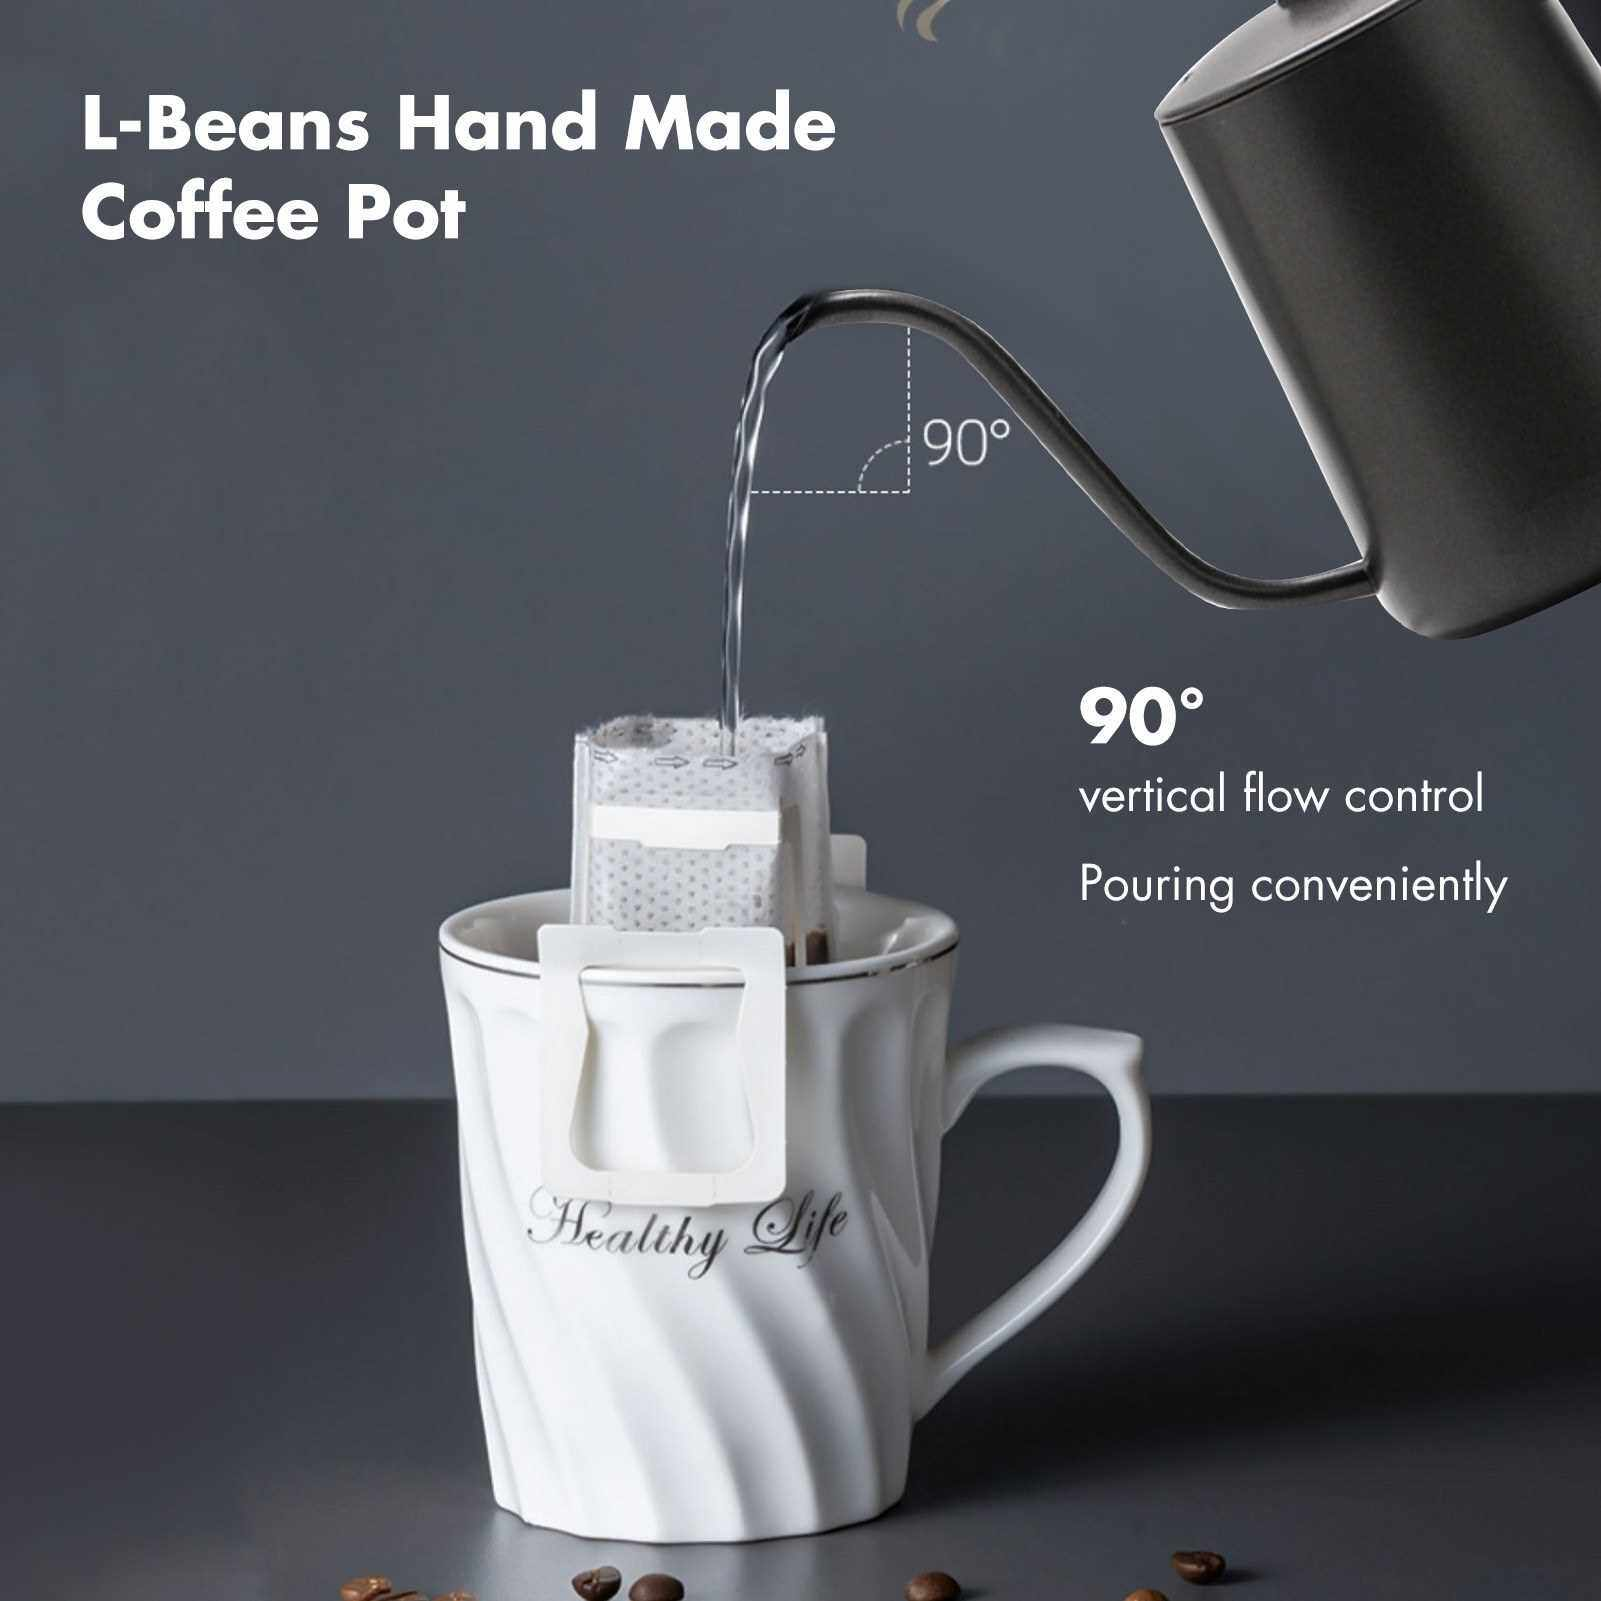 Best Selling 600ml Coffee Kettle Brew Coffee Kettle Coffee Maker Brewer Coffee Pot Stainless Steel with Handle Birthday Gift for Coffee Lover (Black)